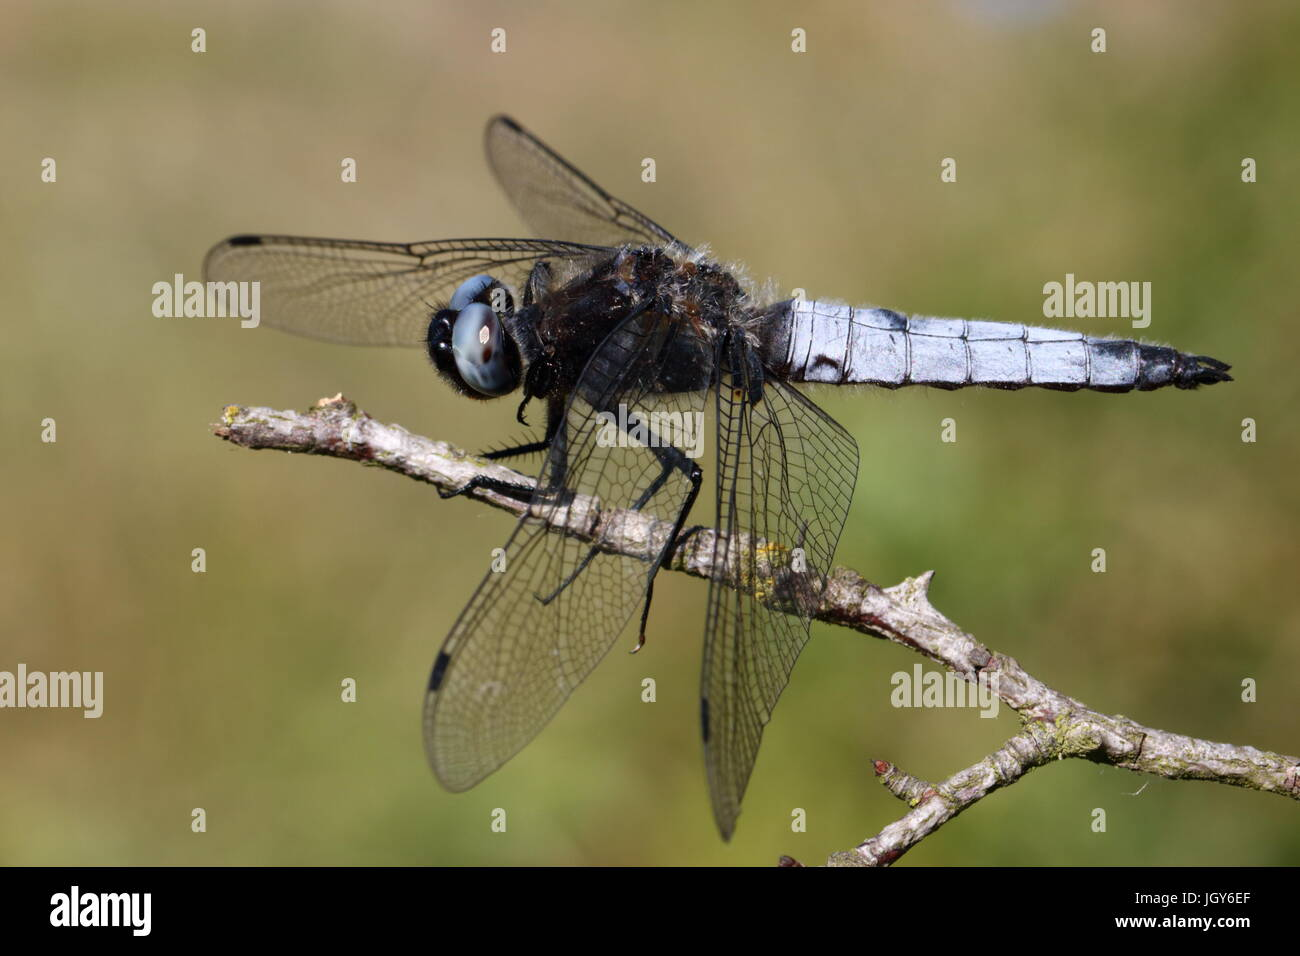 Scarce Chaser Dragonfly (Blue Lagoon Nature Reserve, Milton Keynes, July 2015) - Stock Image